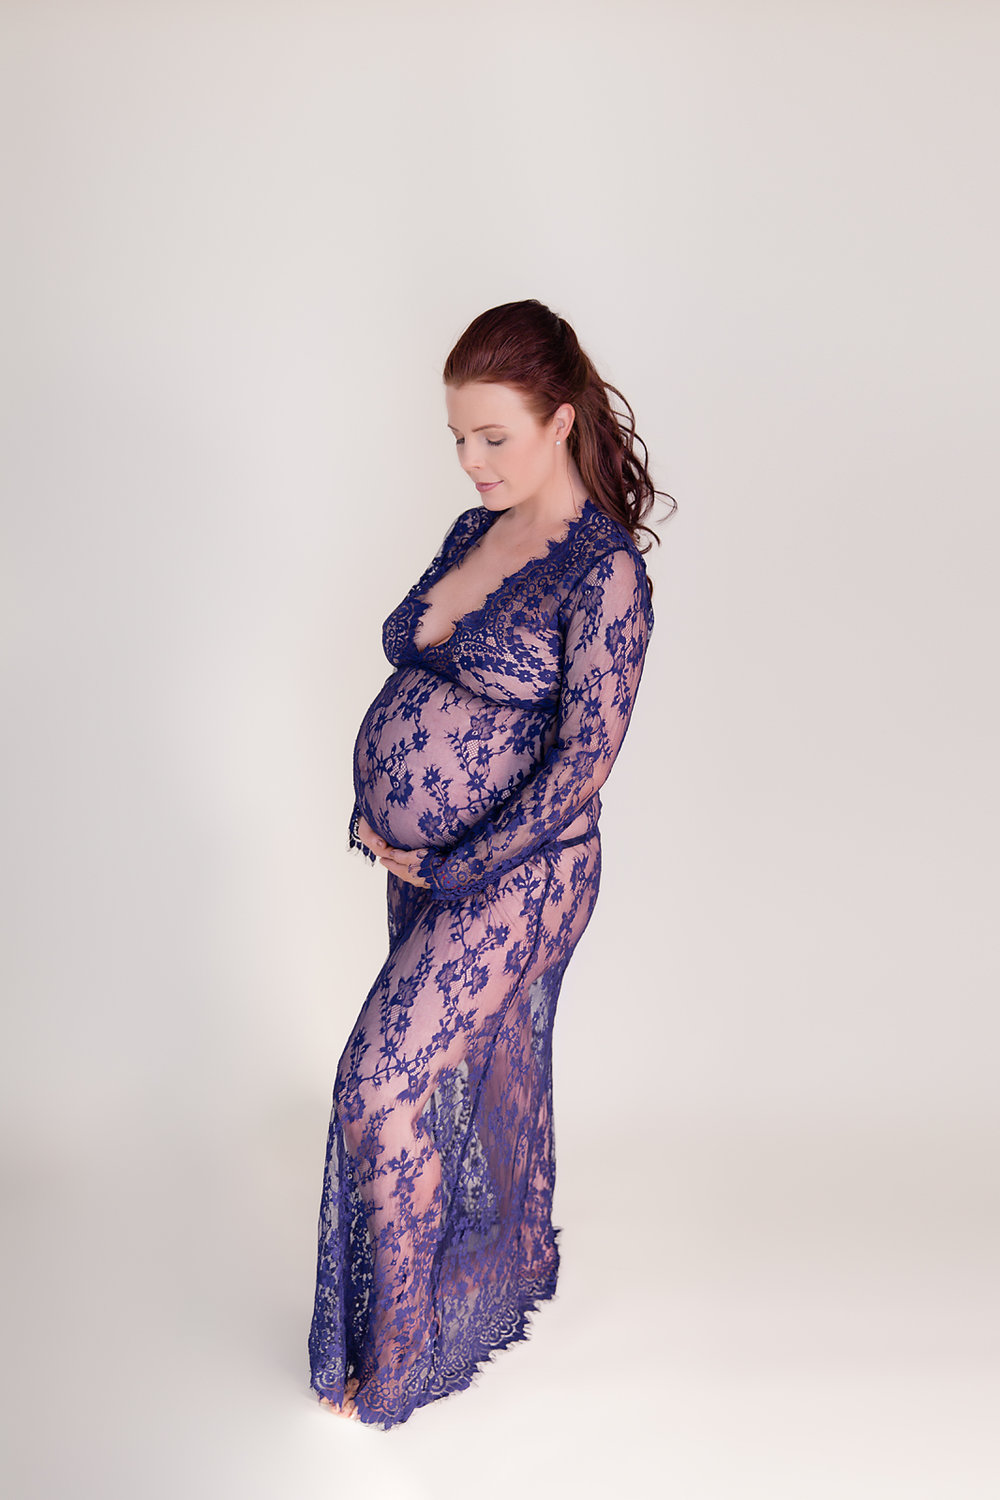 Mother to be in a blue lace gown. Maternity photoshoot in Calgary, Alberta